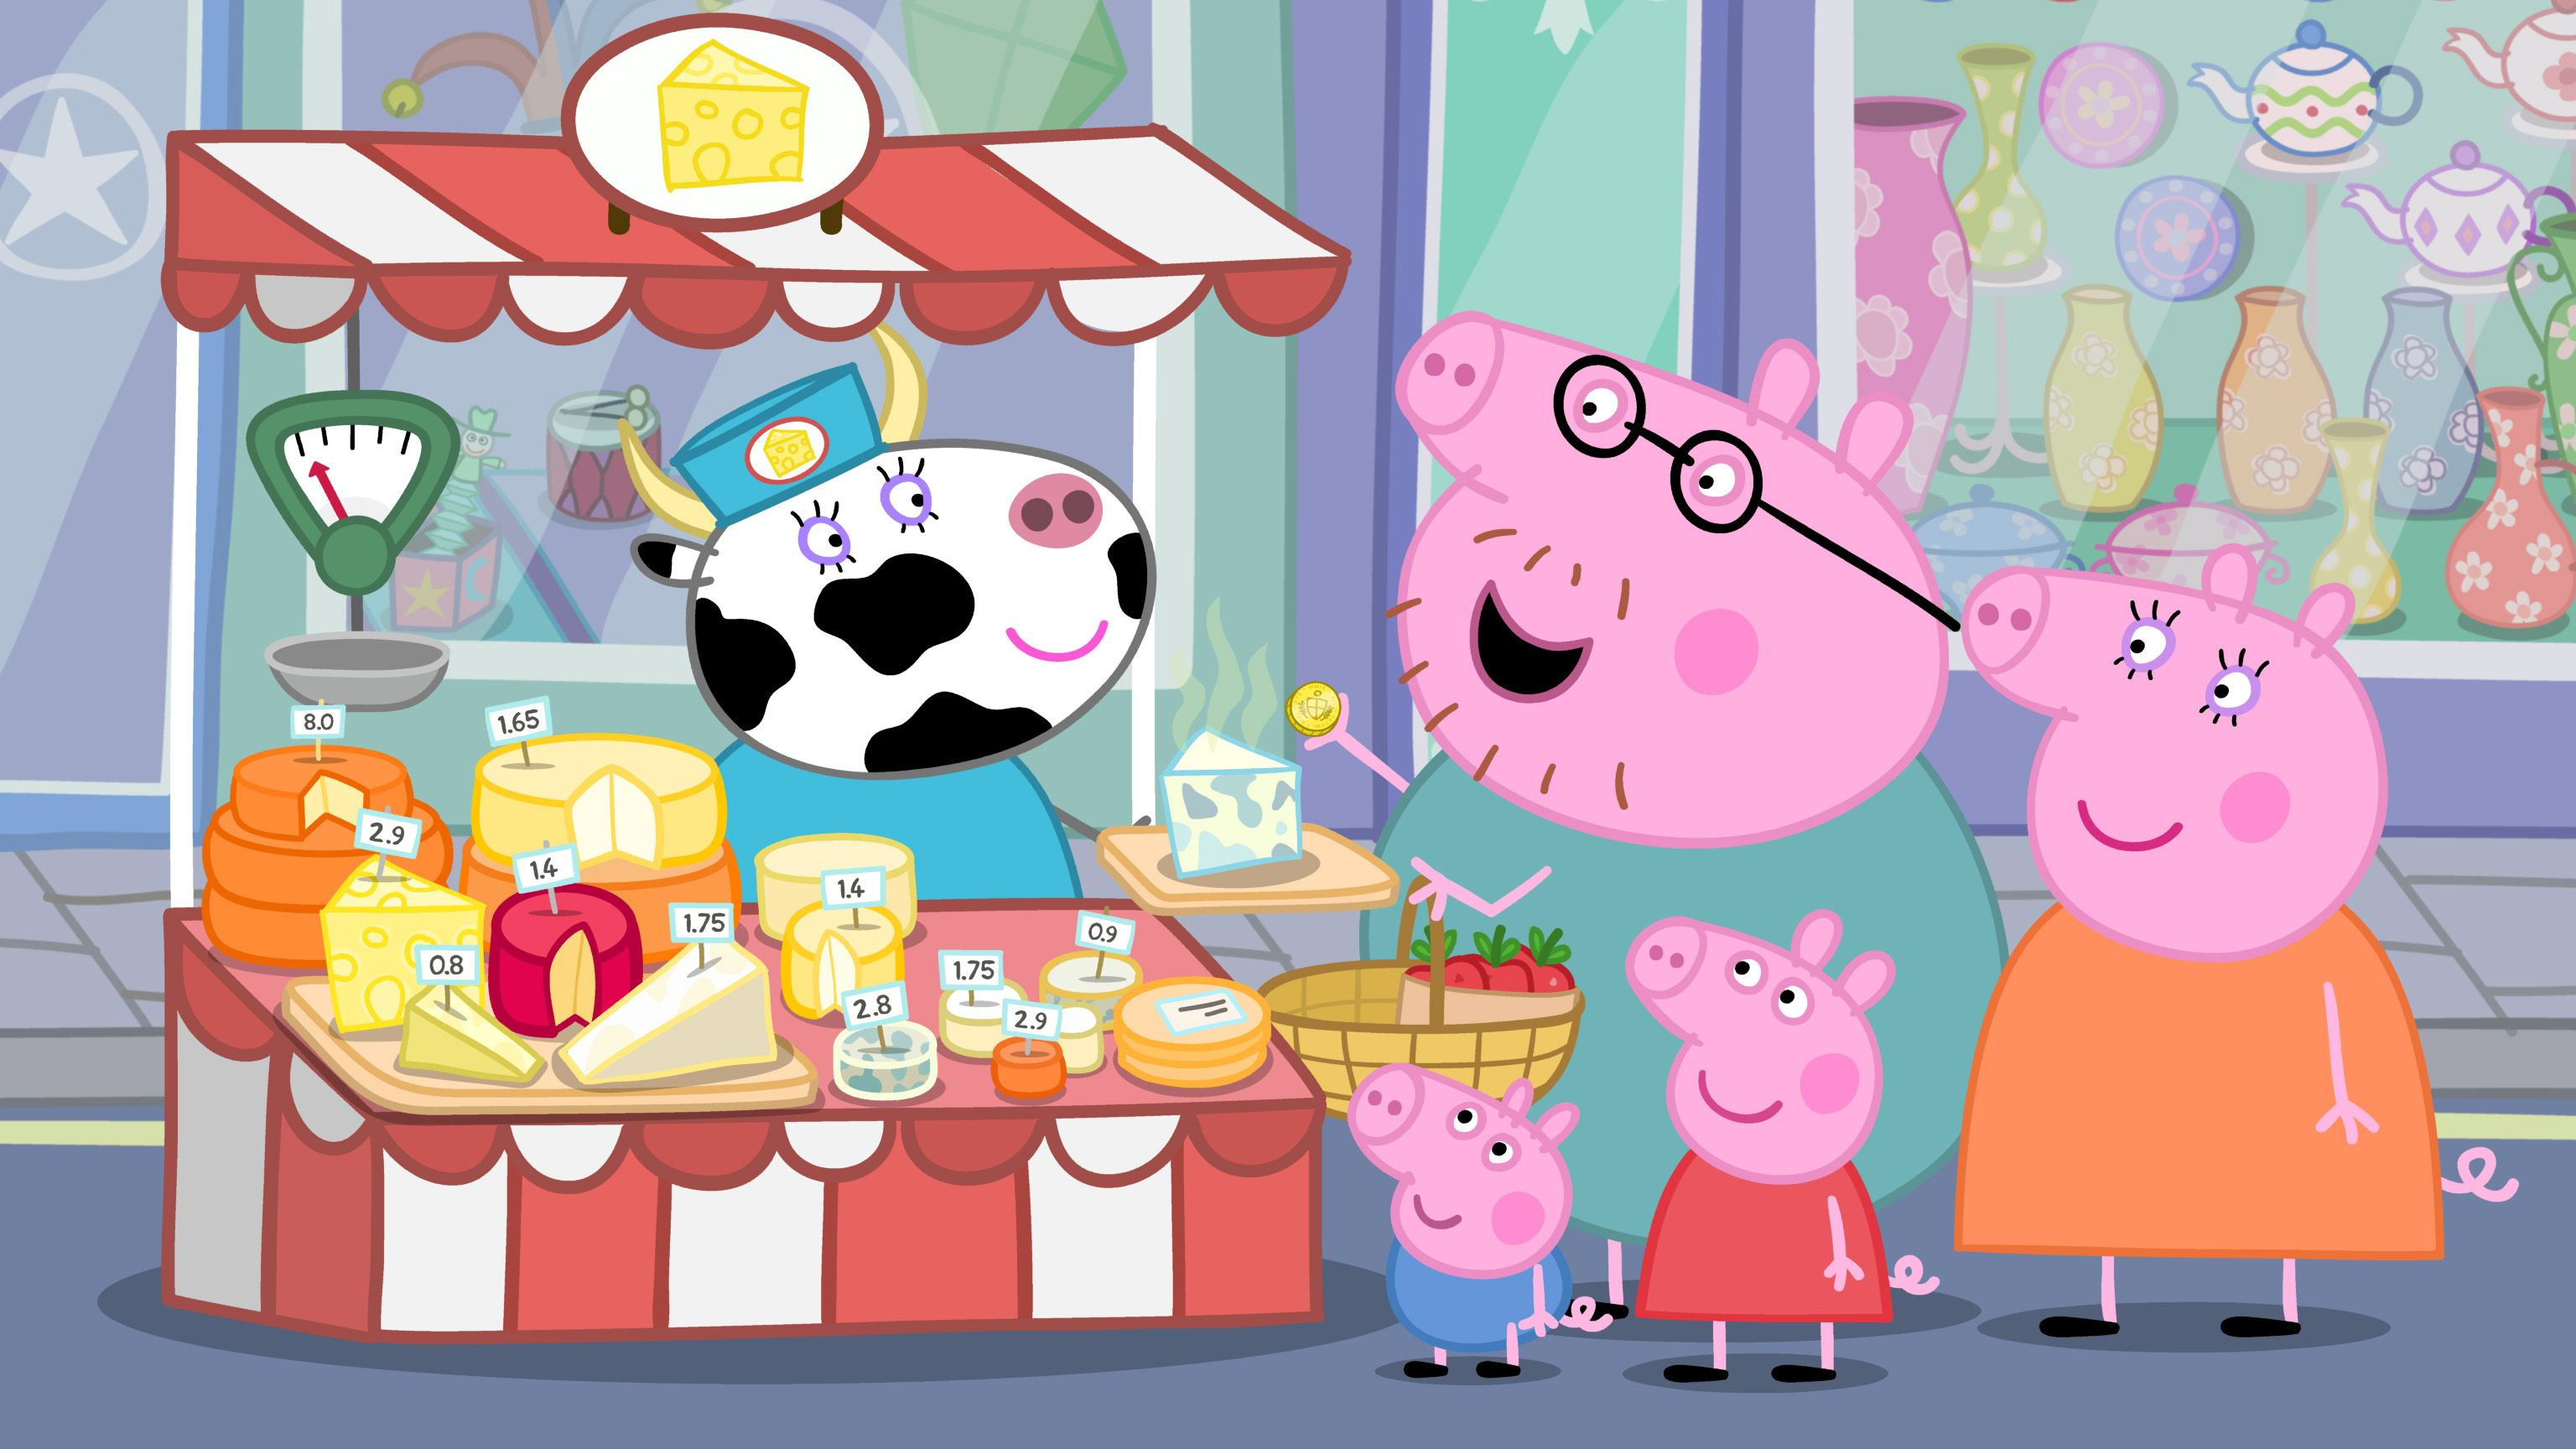 82e4195bbb2 Peppa Pig Meets a Superhero in New Nickelodeon Episodes This May ...